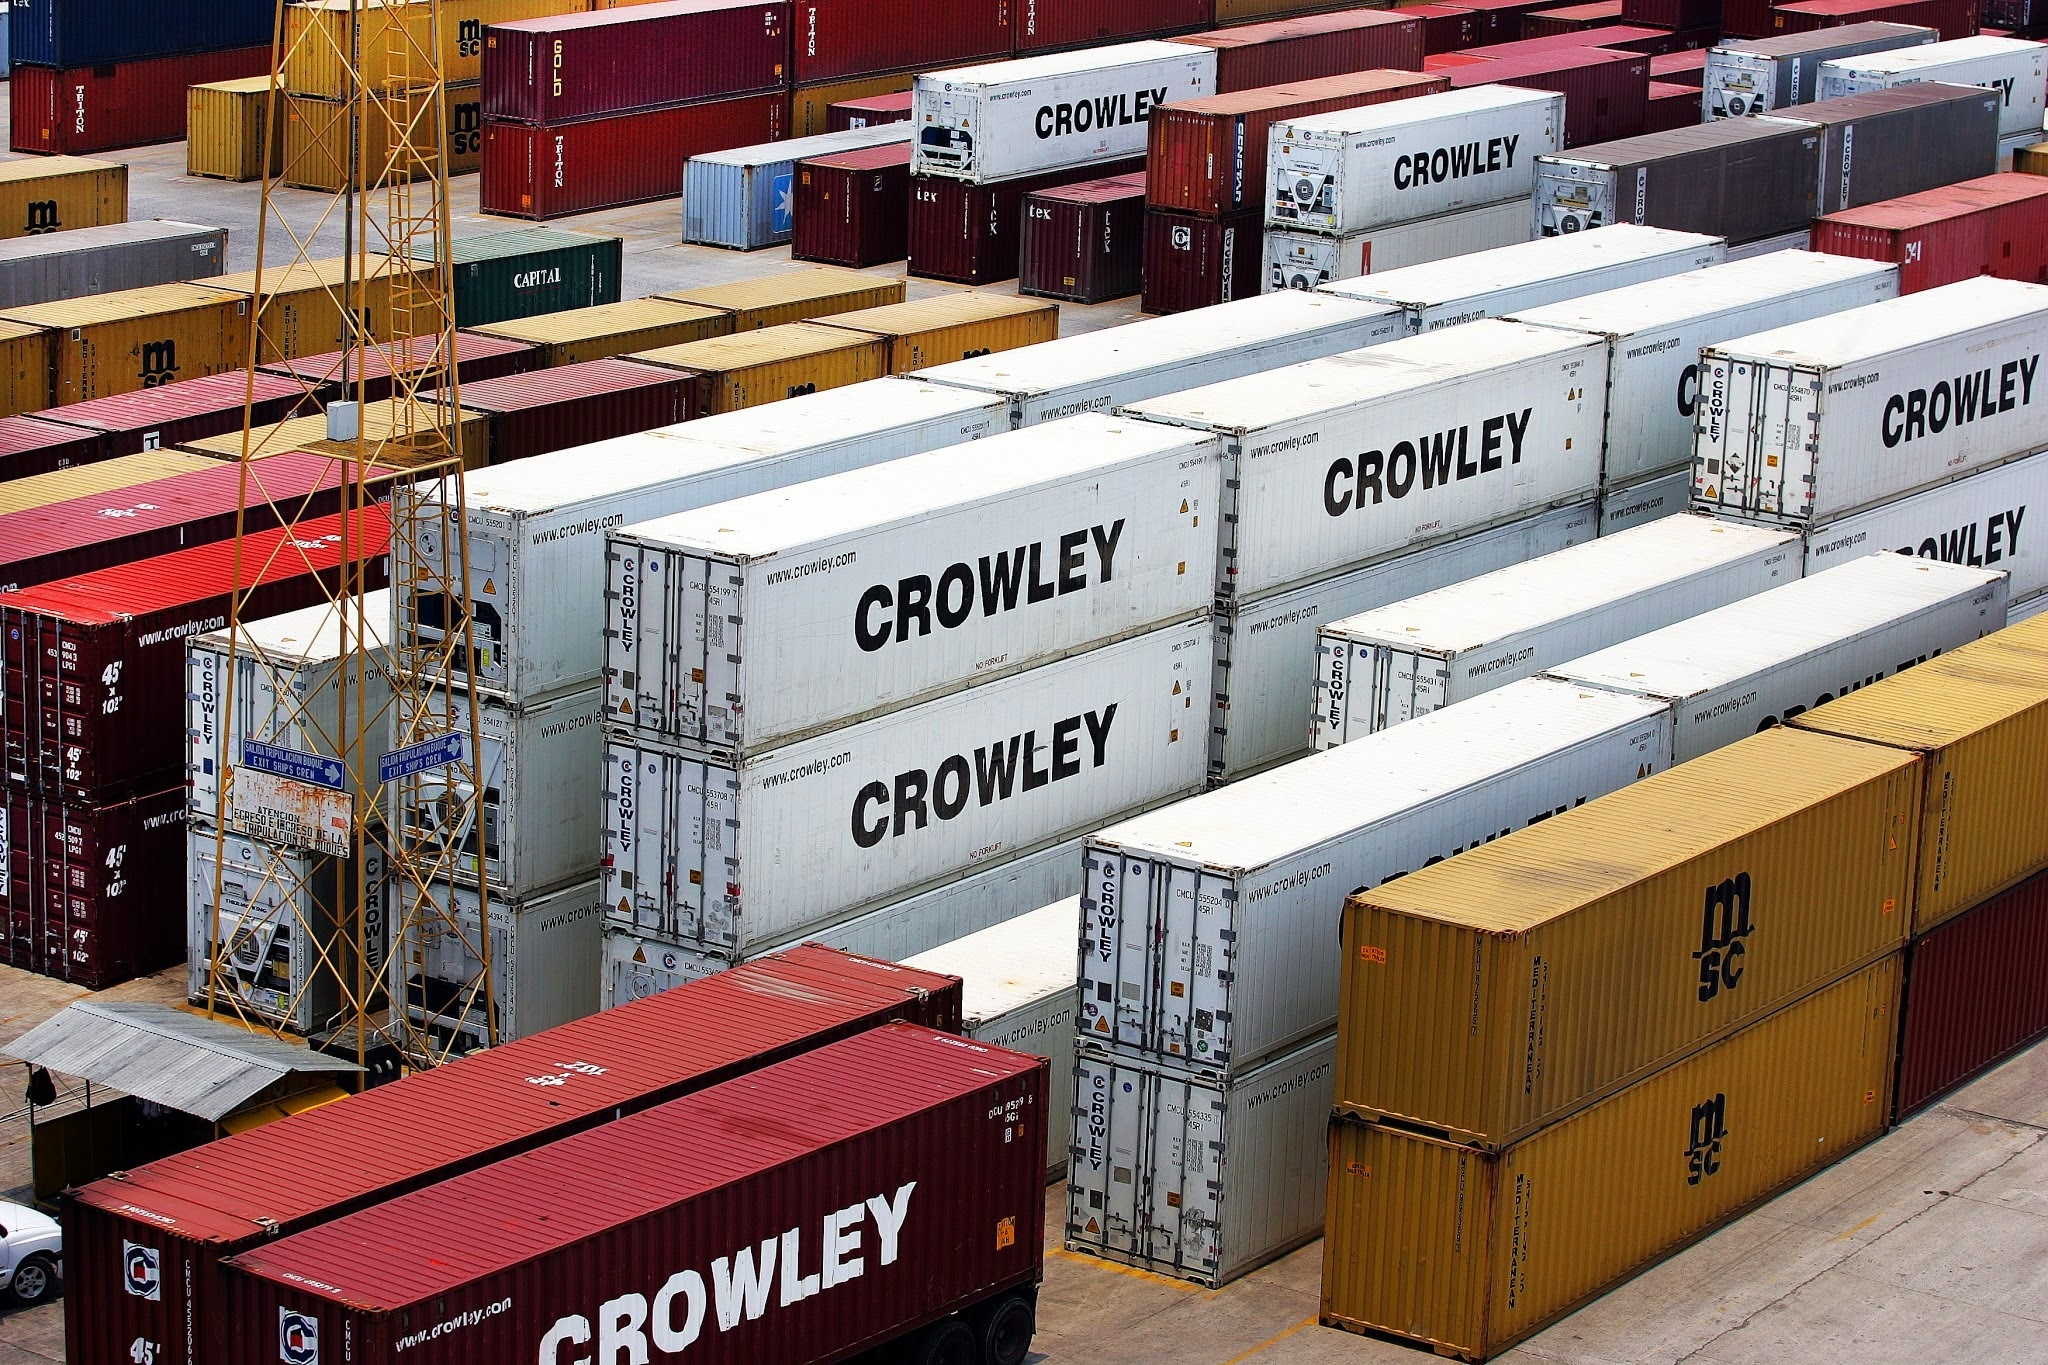 Crowley Liner & Logistics - Warehouse image 2